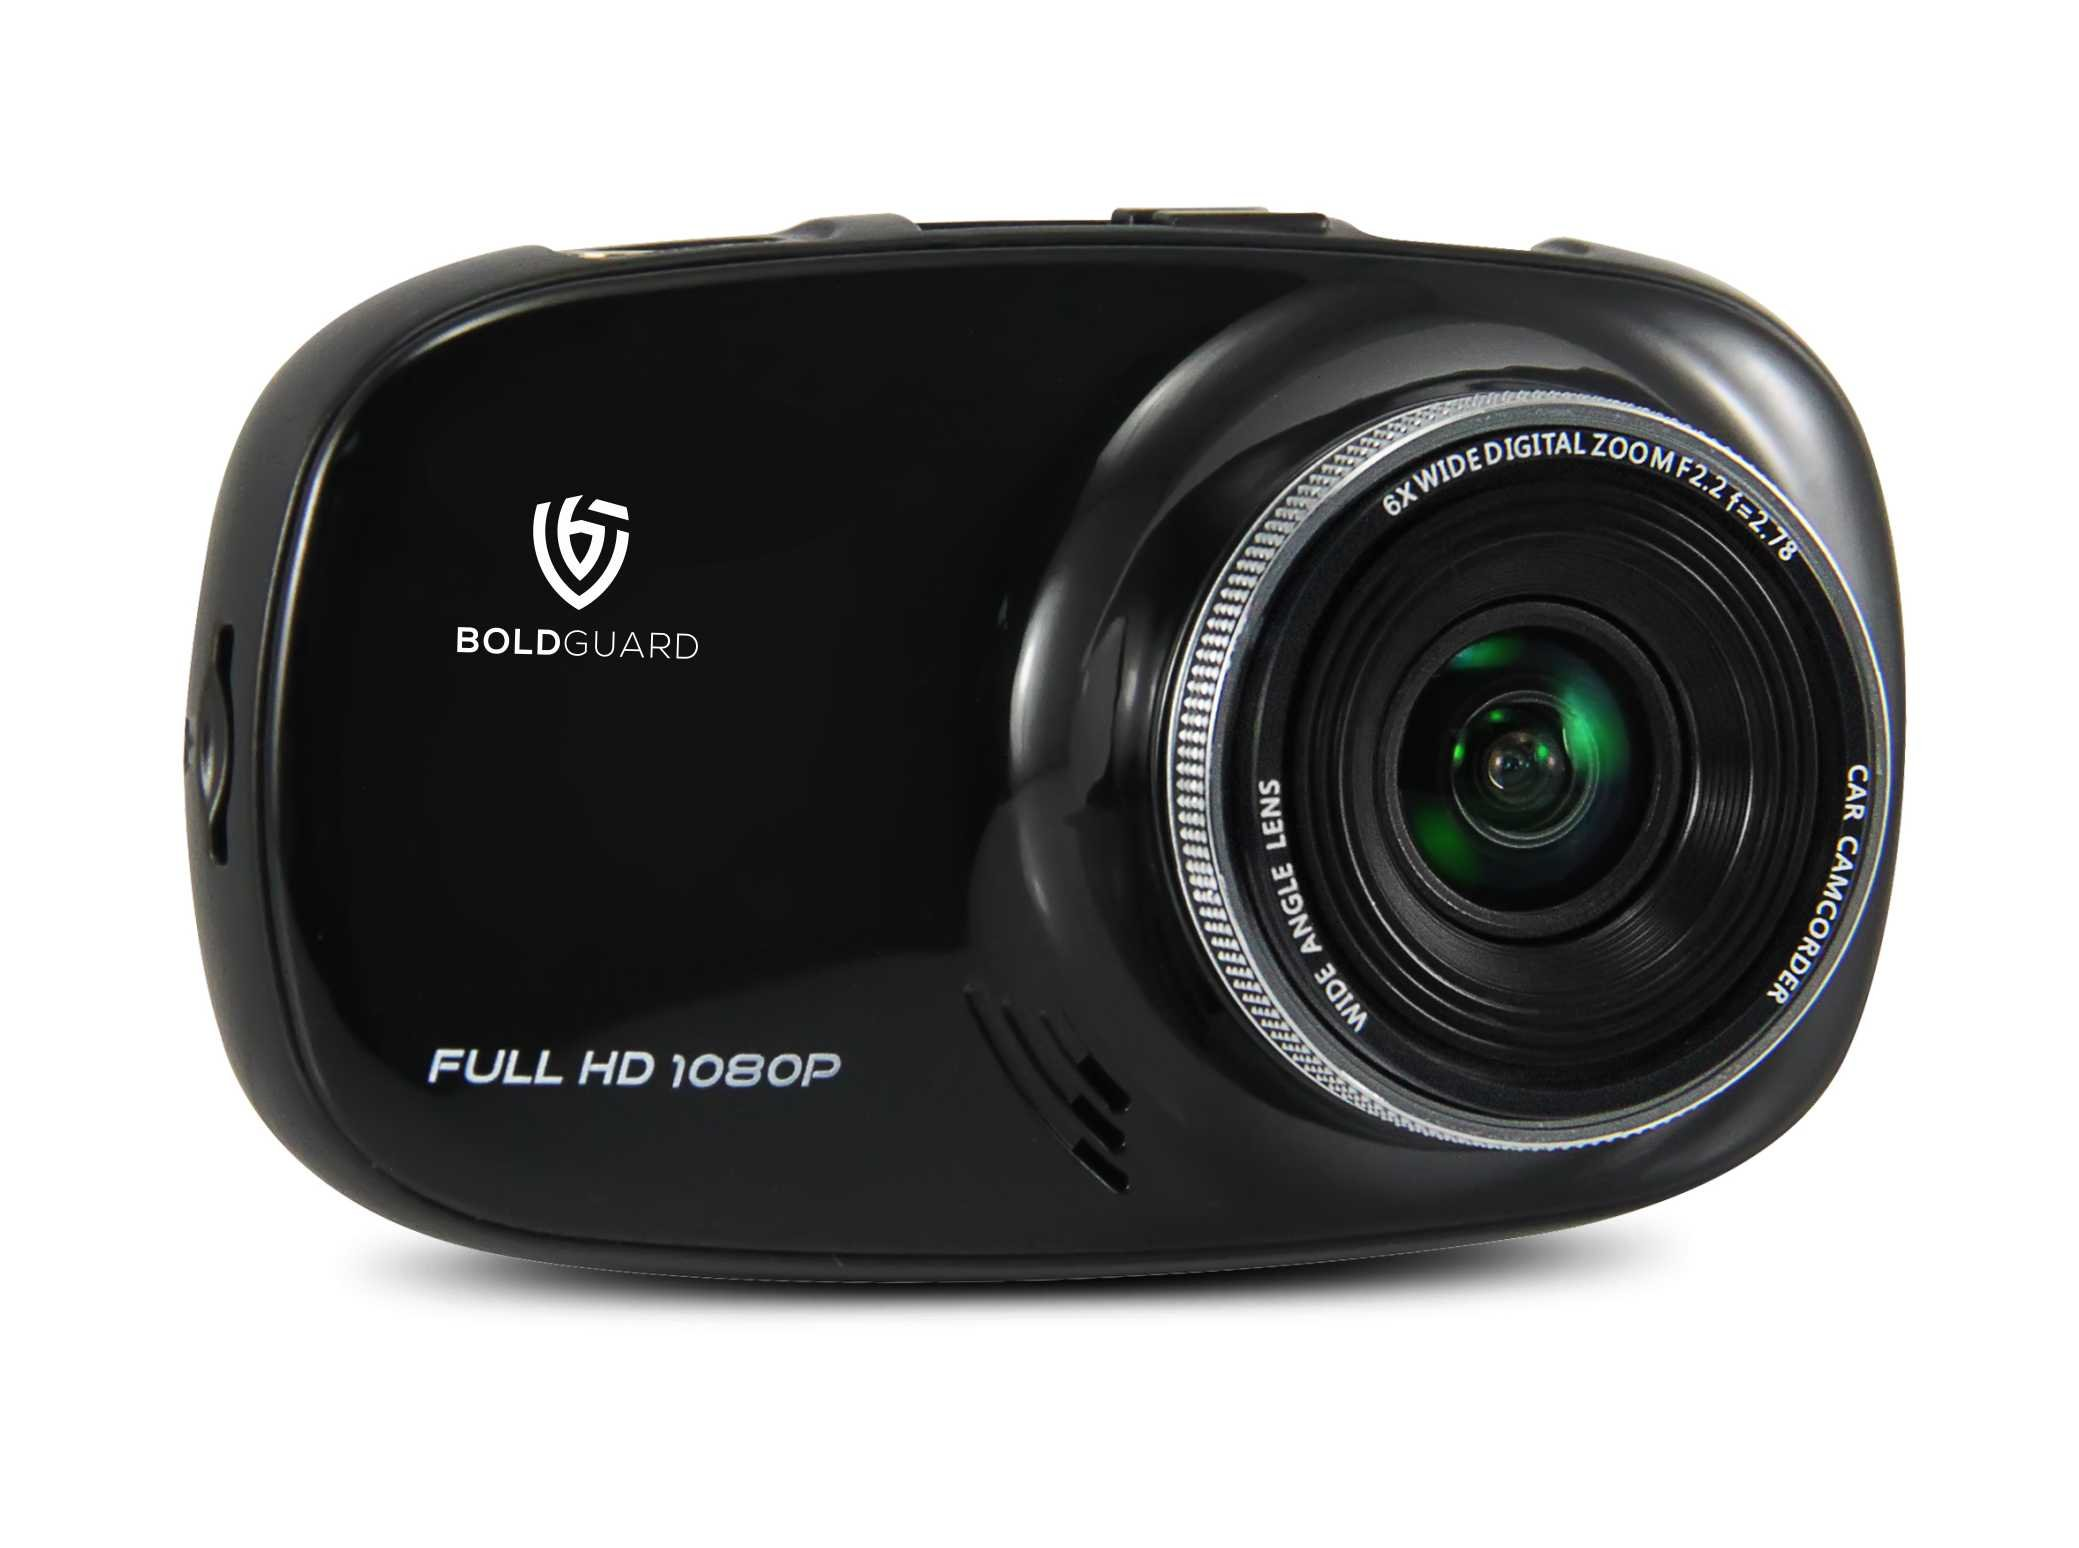 Boldguard Dash Cam HD - High-Definition 1080p Dash Cam Recorder with Motion Sensor - Perfect for Any Type of Car or Truck